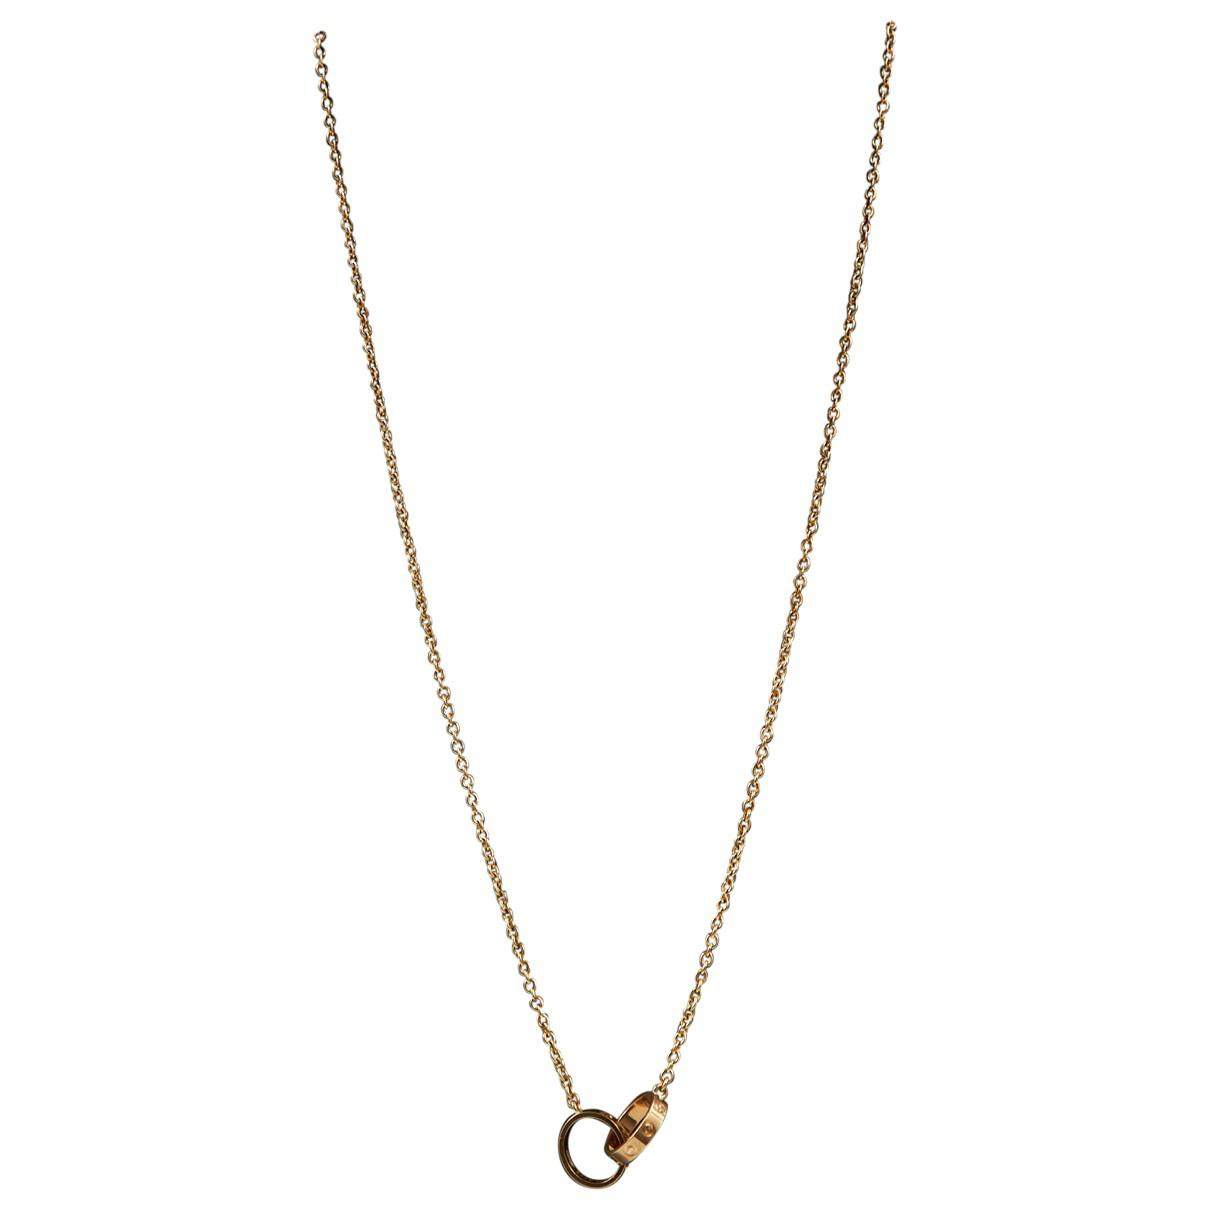 ce3bc619c2280 Lyst - Cartier Love Gold Yellow Gold Necklace in Metallic